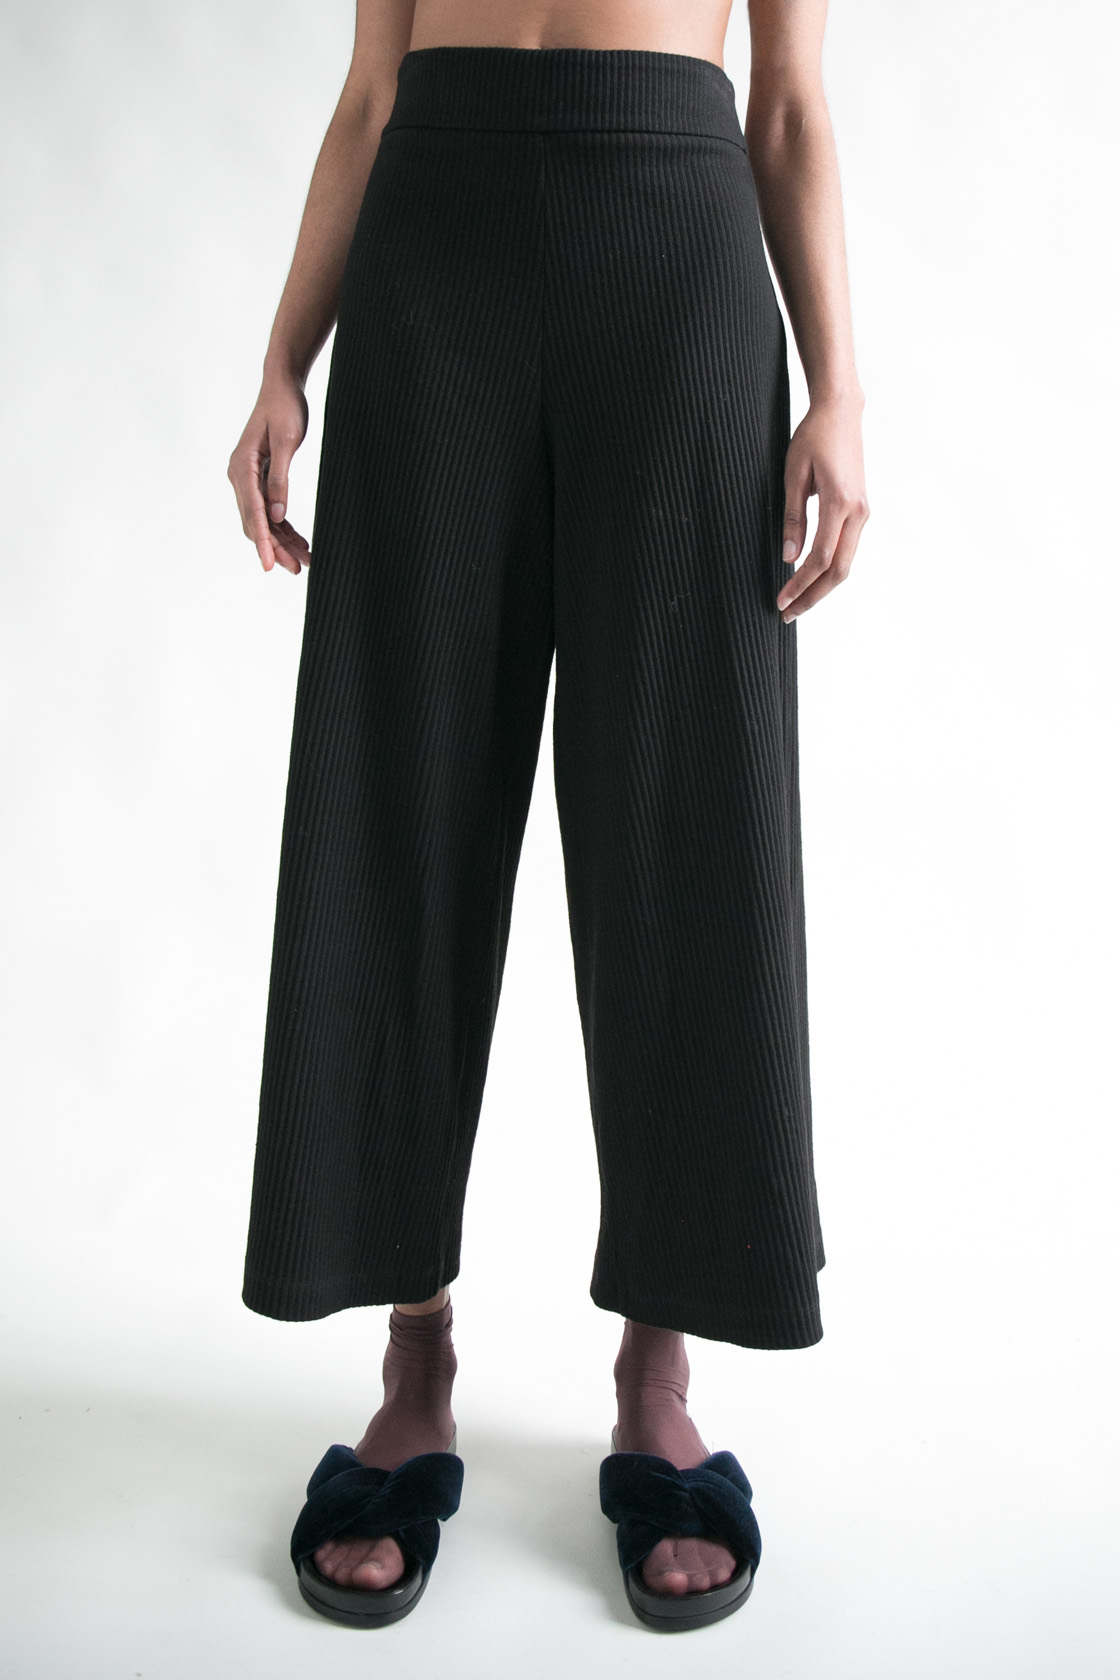 Basic Color Pant II  XS S M L  $228